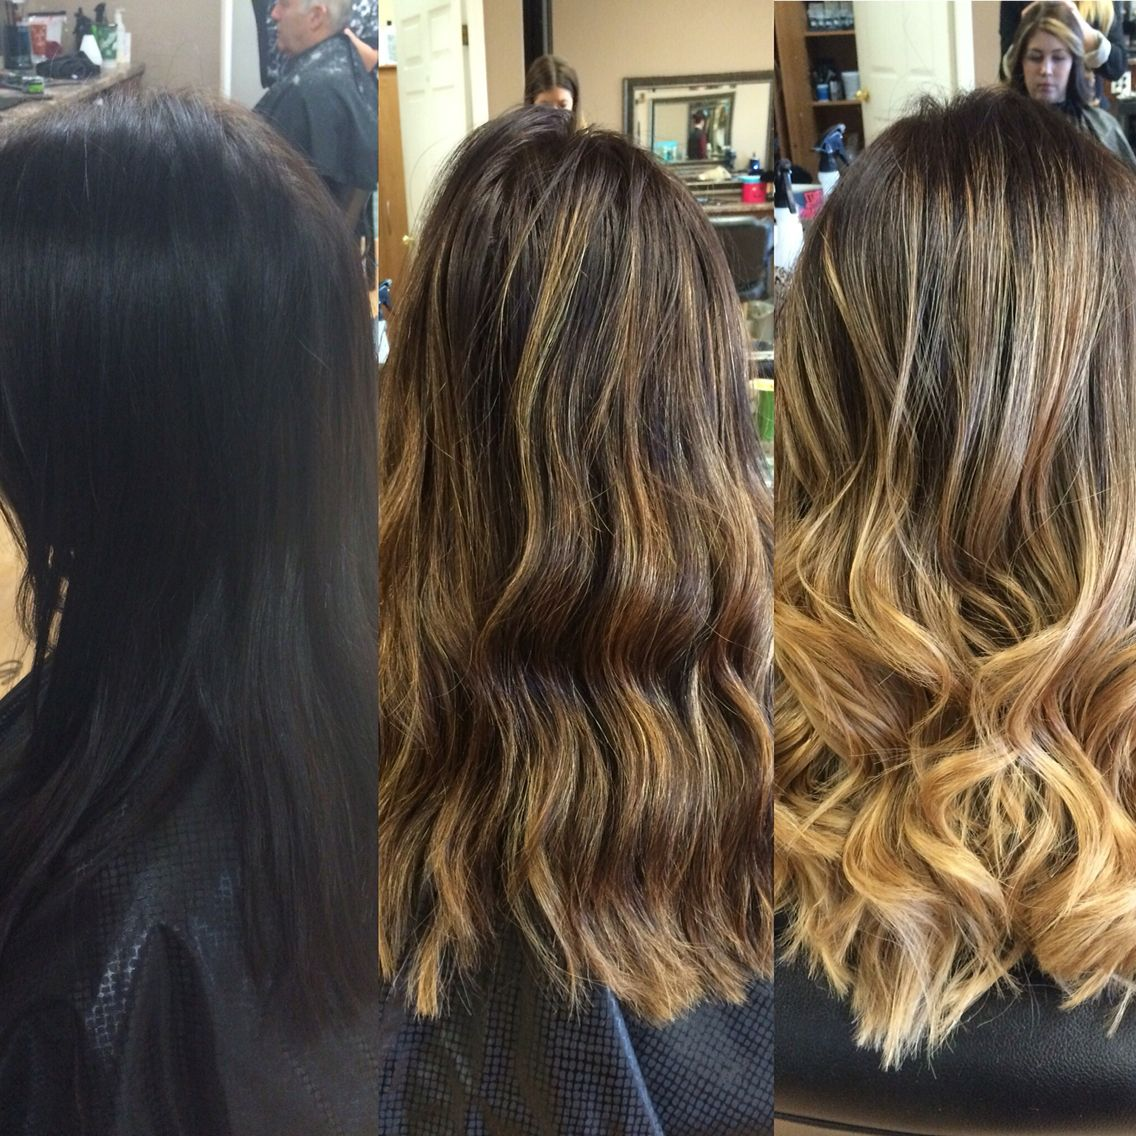 Transform! From dark to light in 3 steps. Brunette to blonde, long ...